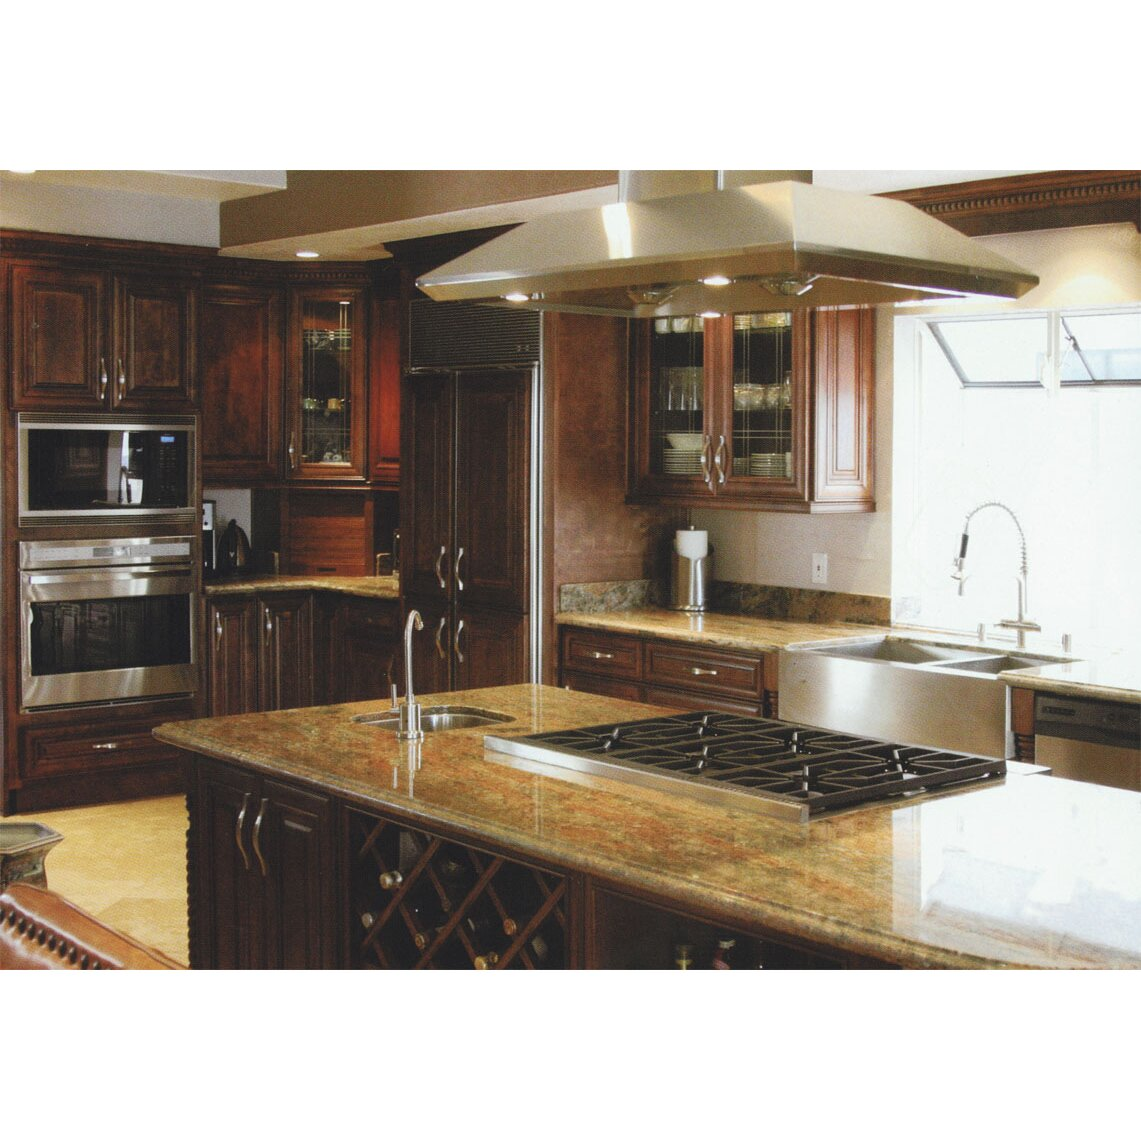 Century home living 24 x 30 kitchen wall cabinet for Kitchen cabinets 30 x 24